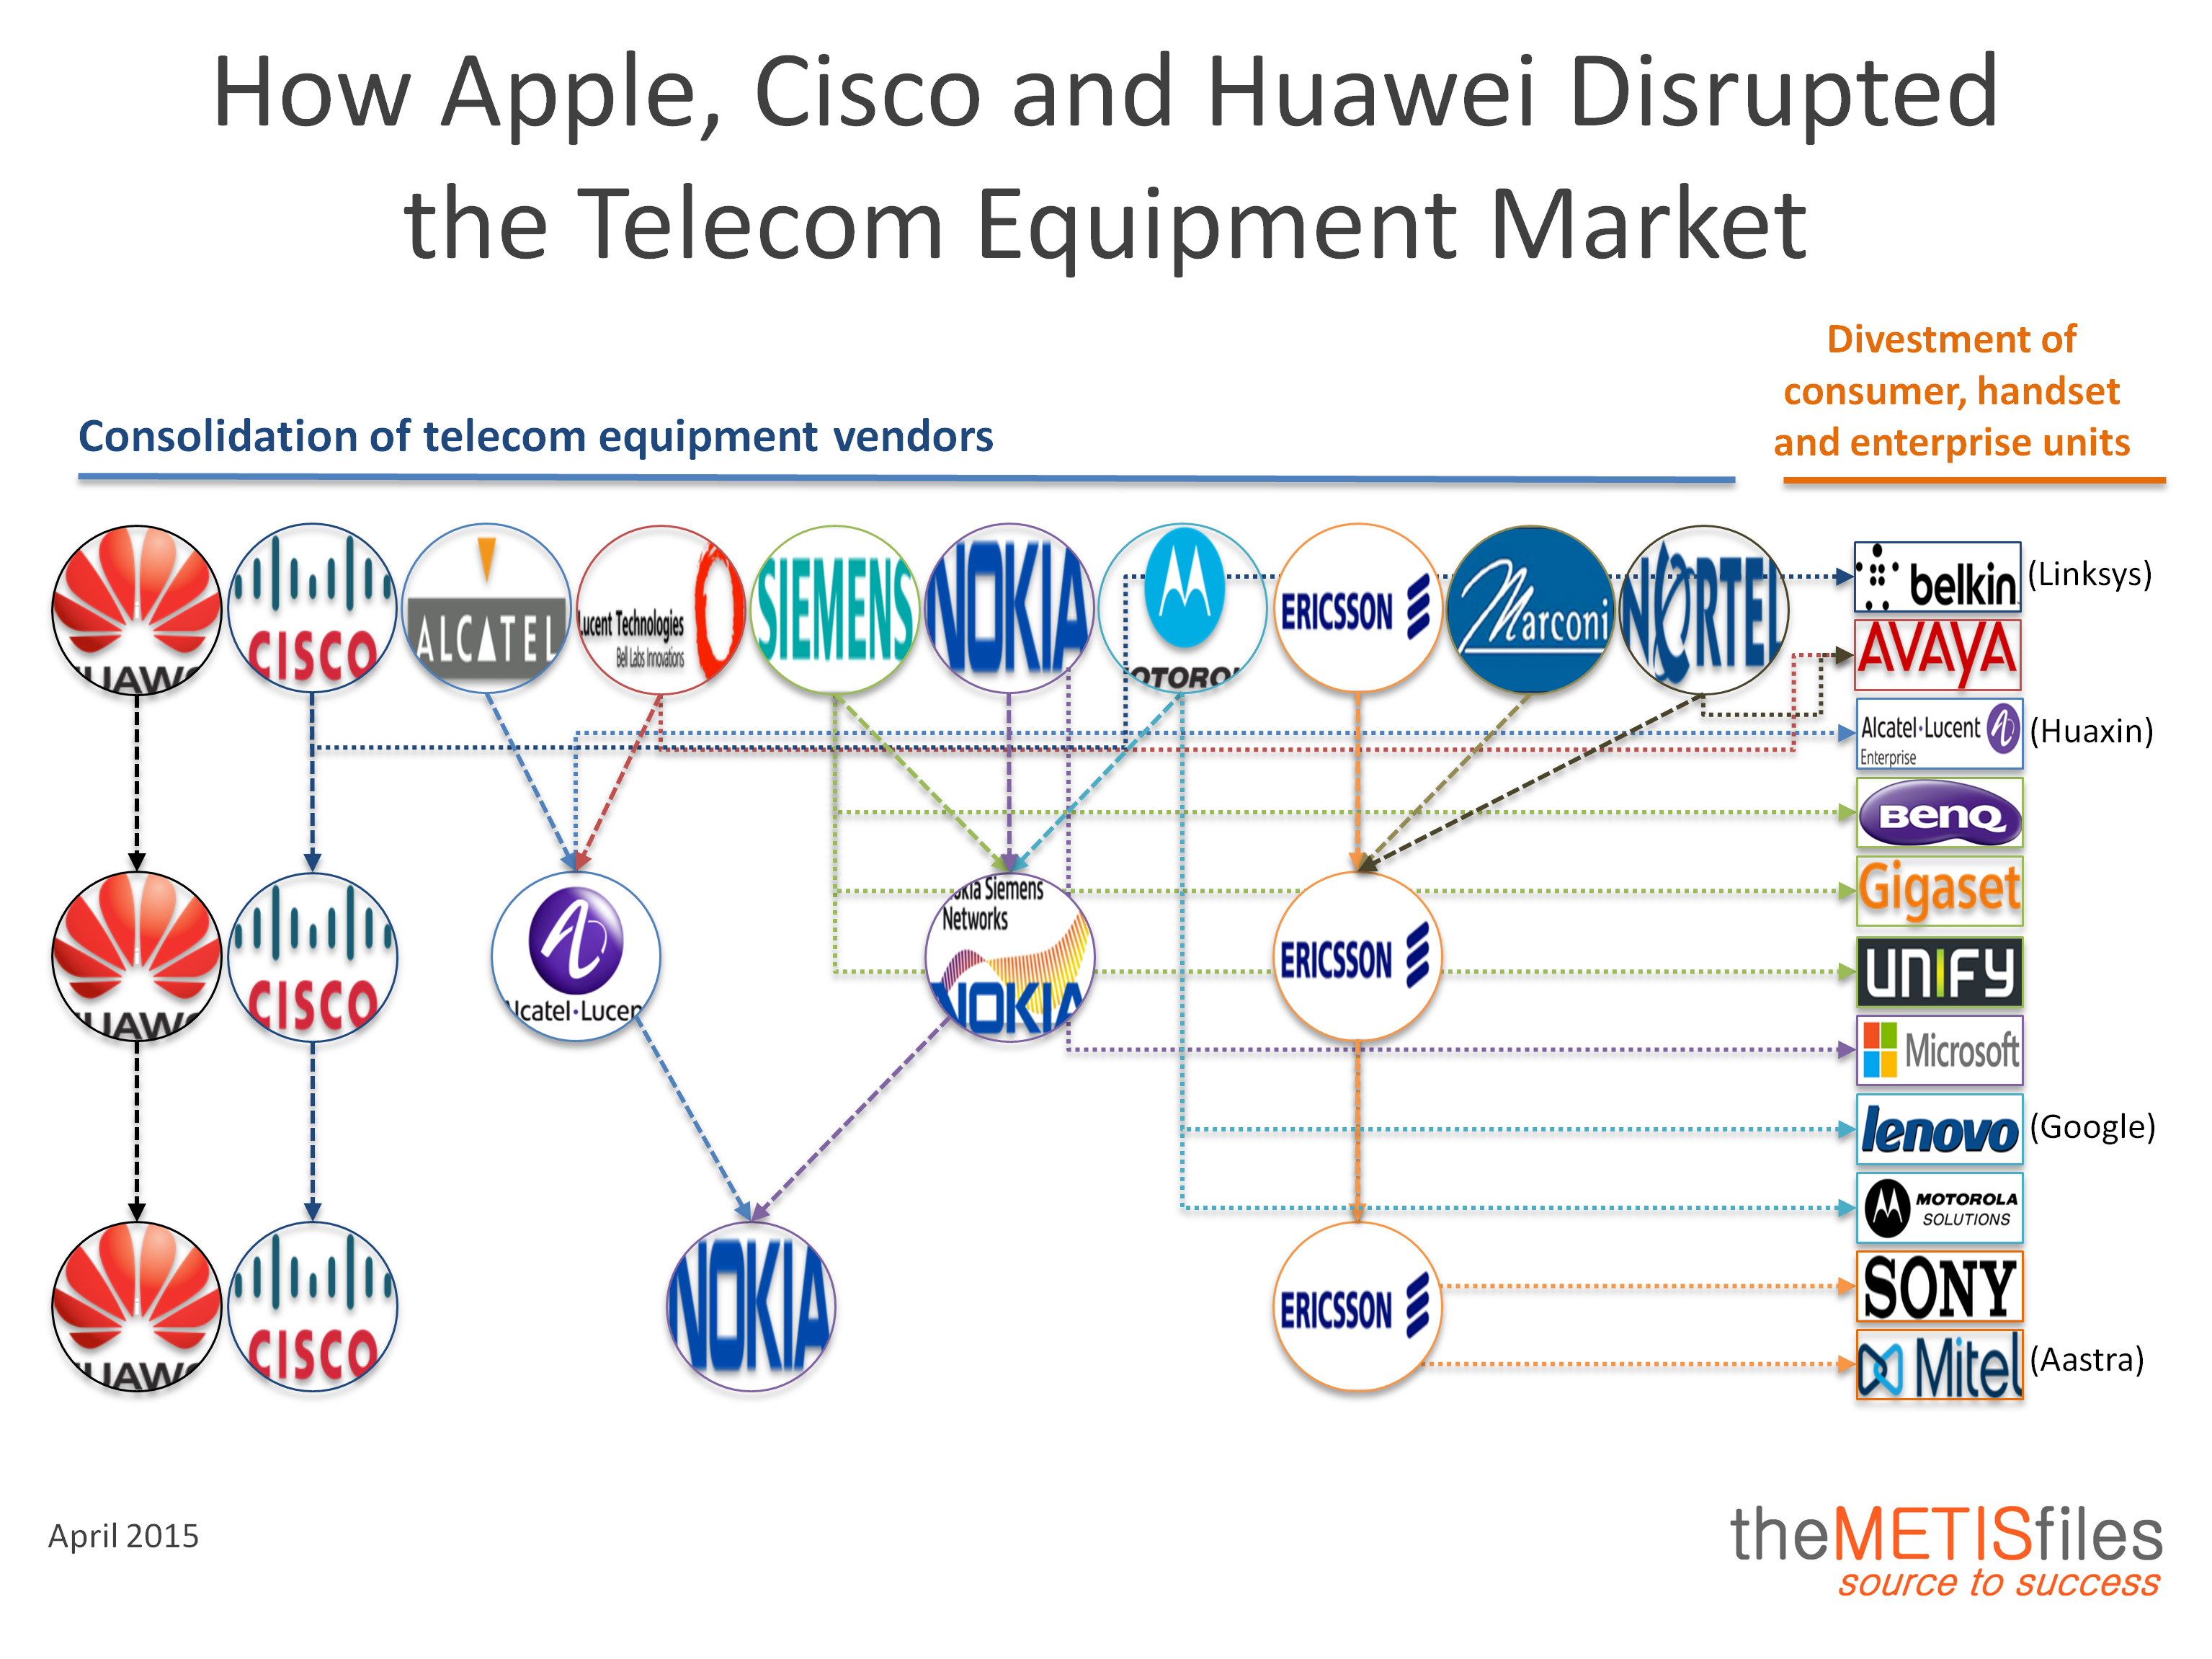 Consolidation and Divestment in Telecom Equipment